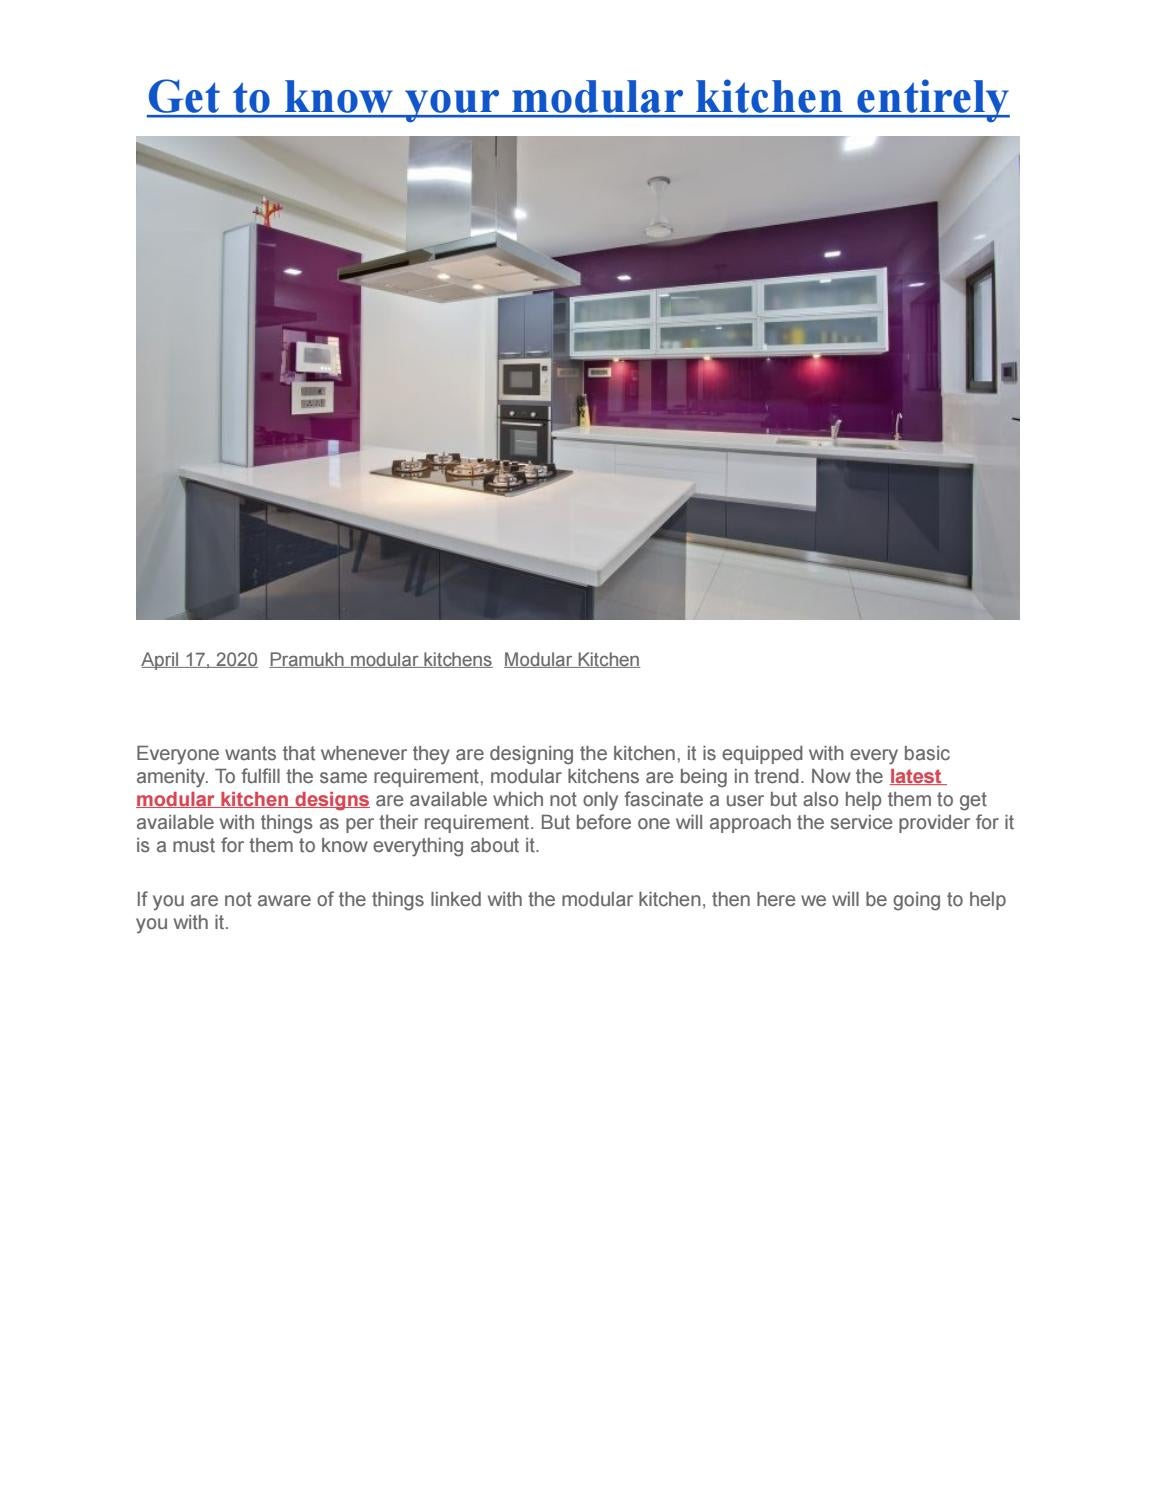 Get to know your modular kitchen entirely by contactpramukhmodular ...